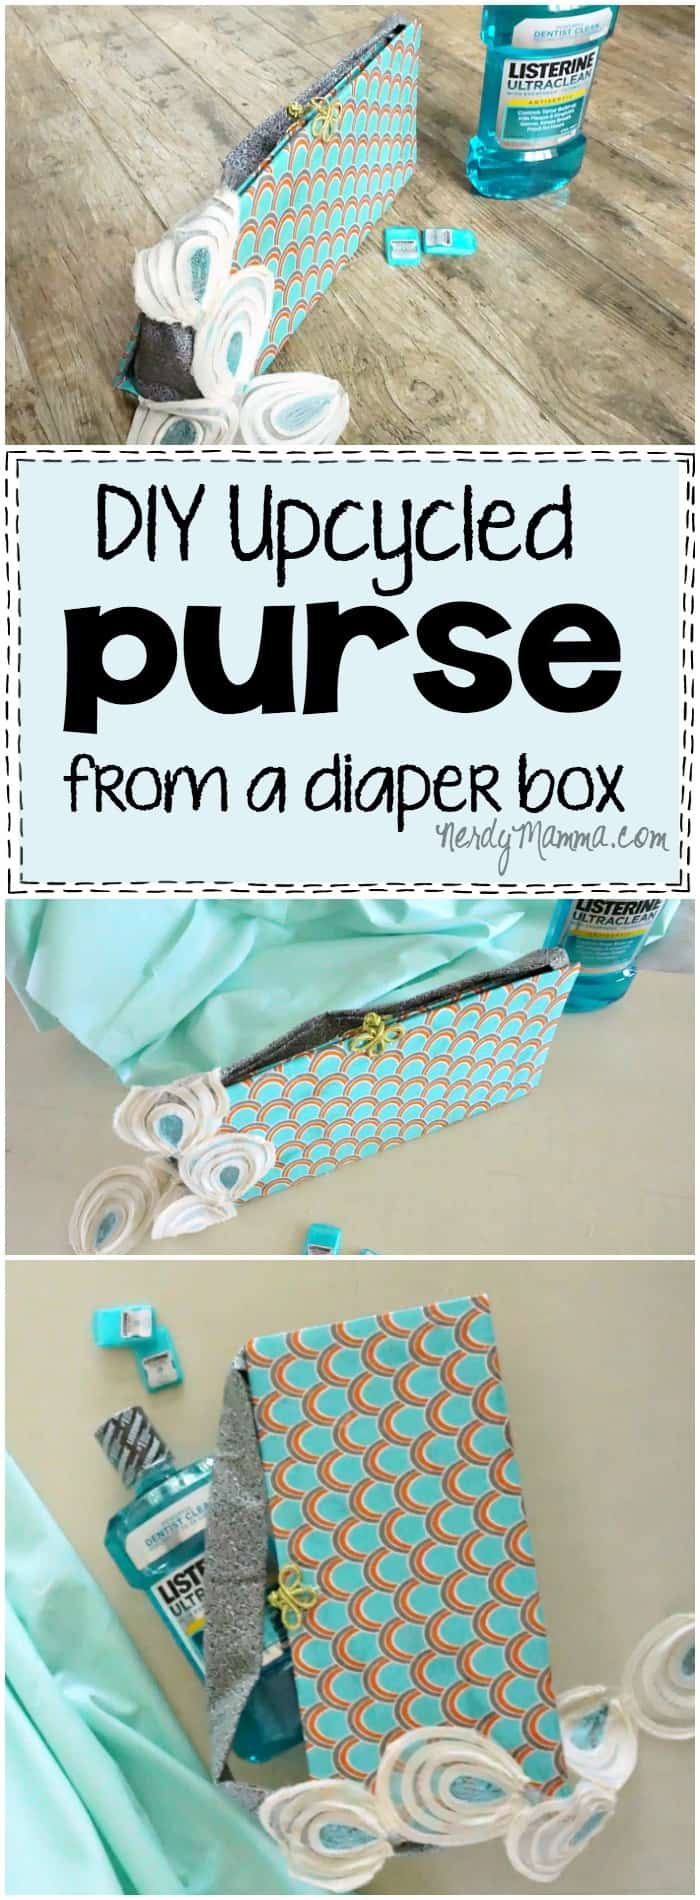 I love this quick project for making a purse out of an old cardboard box! How genius. I want to make 10! LOL!